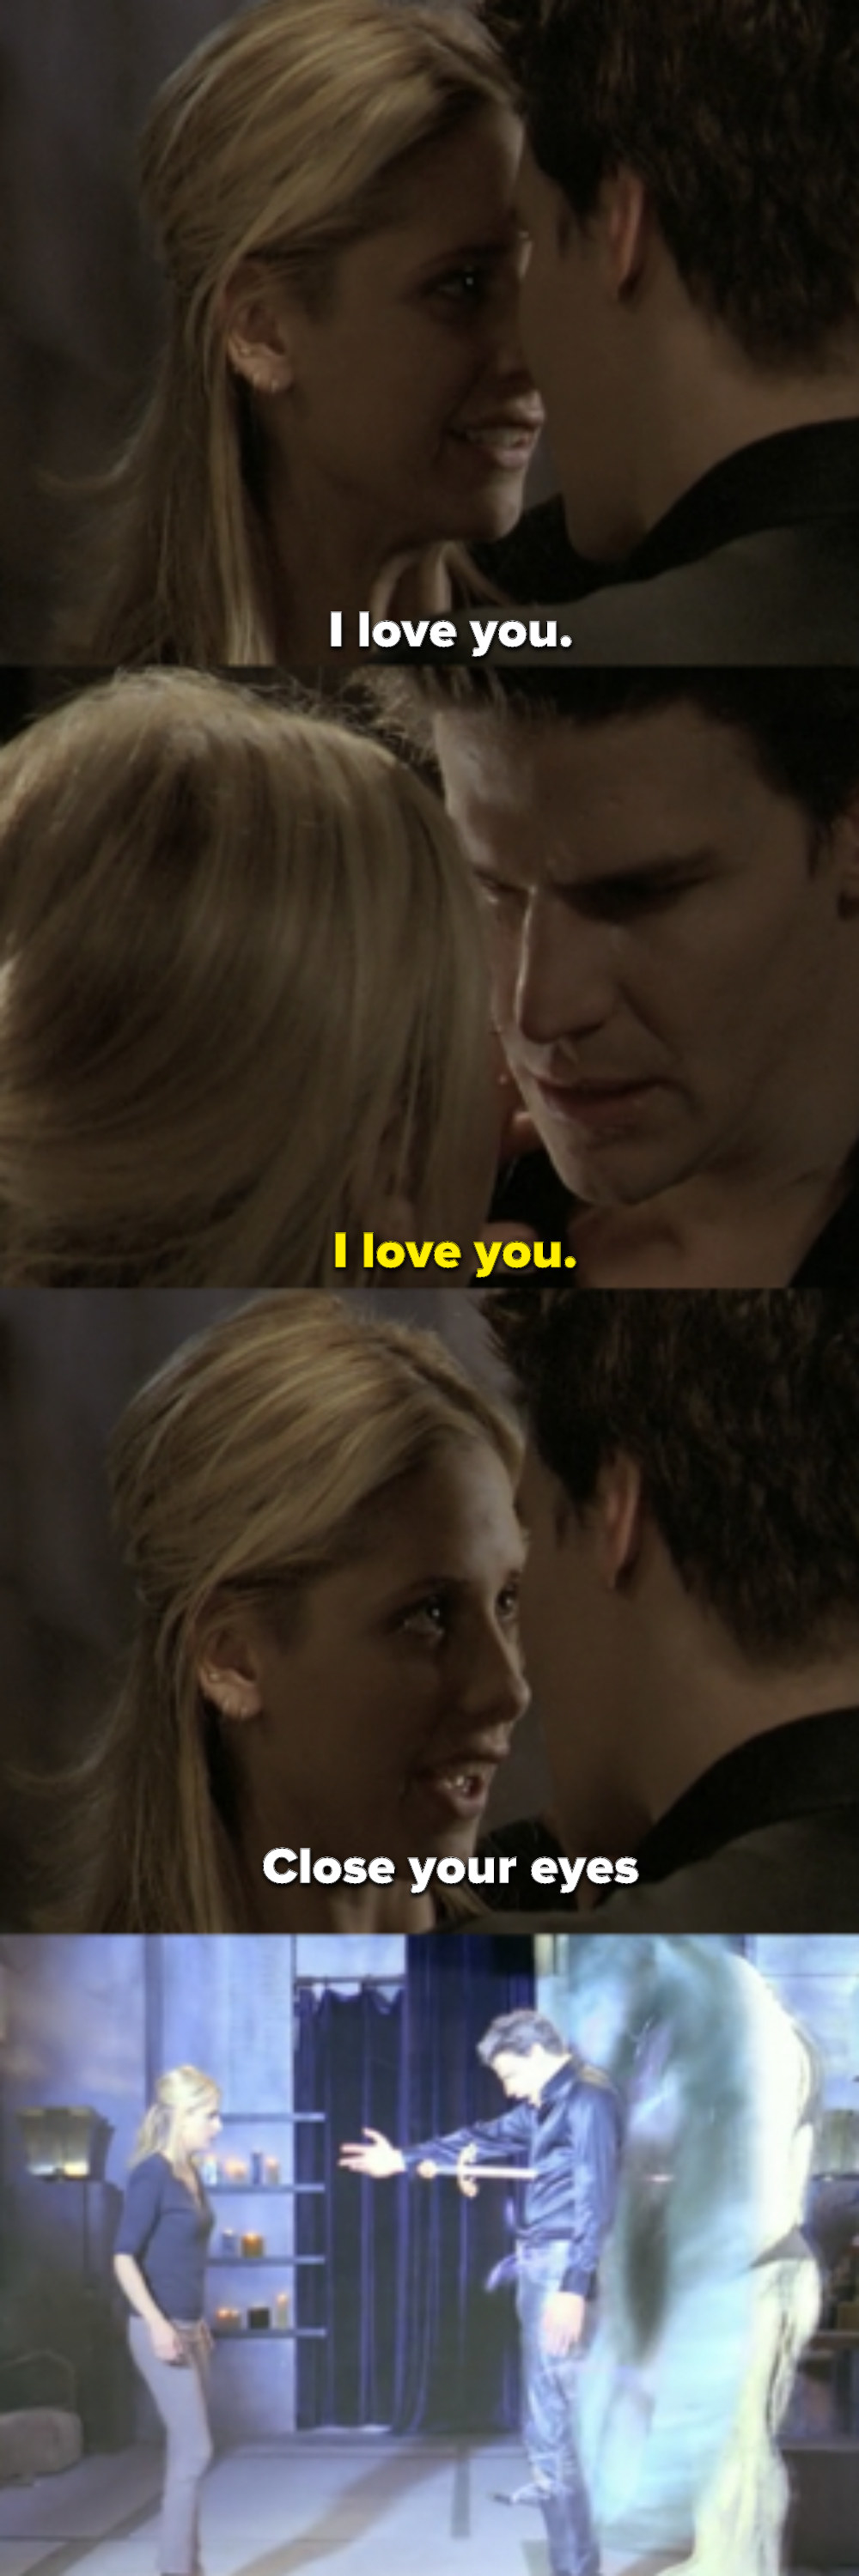 They both say I love you, then Buffy says to close his eyes and stabs him, pushing him into the portal